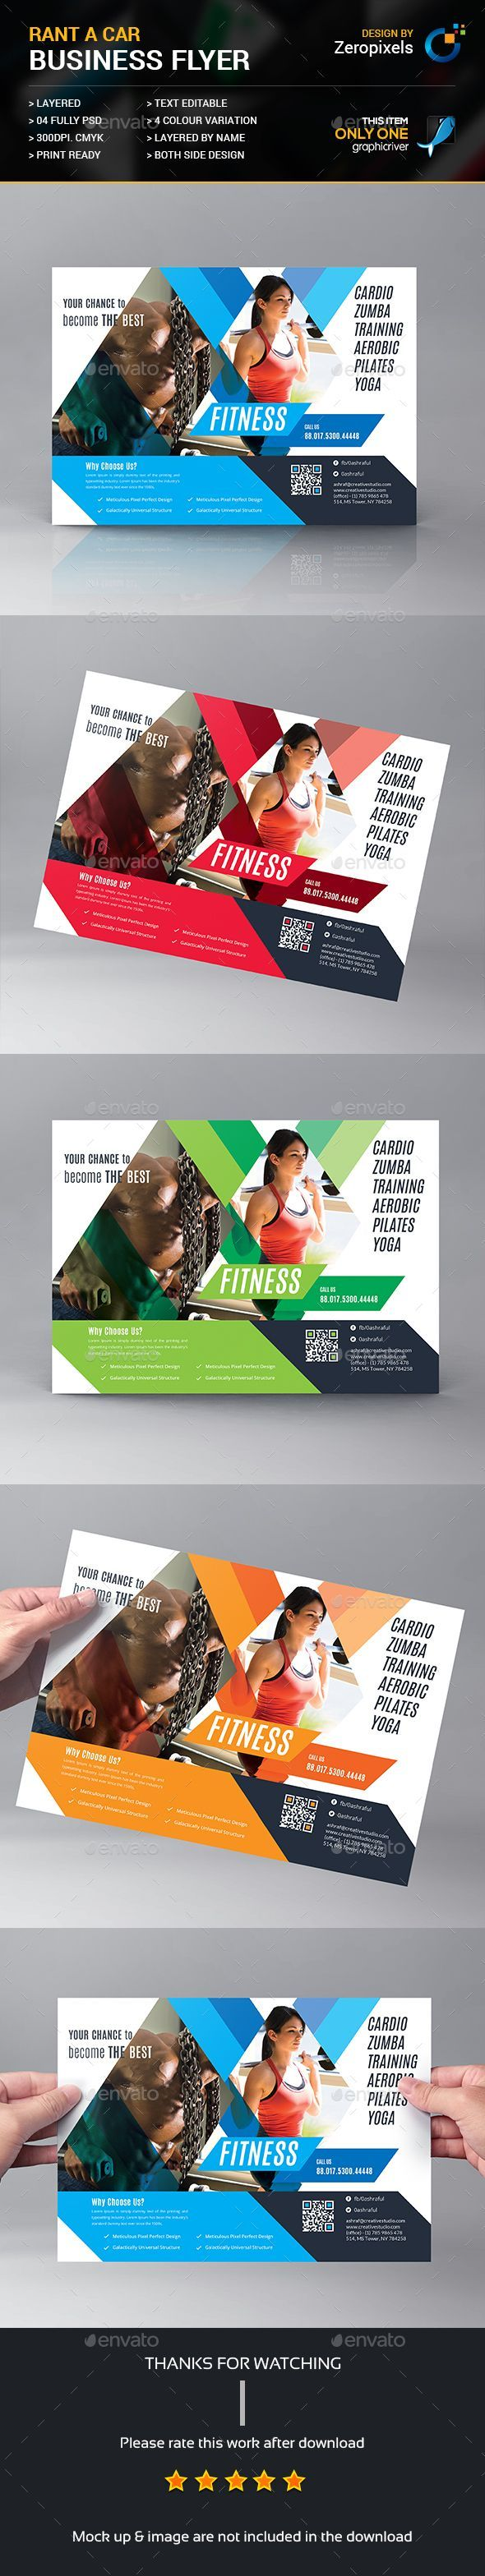 10472 best best business cards images on Pinterest | Business card ...